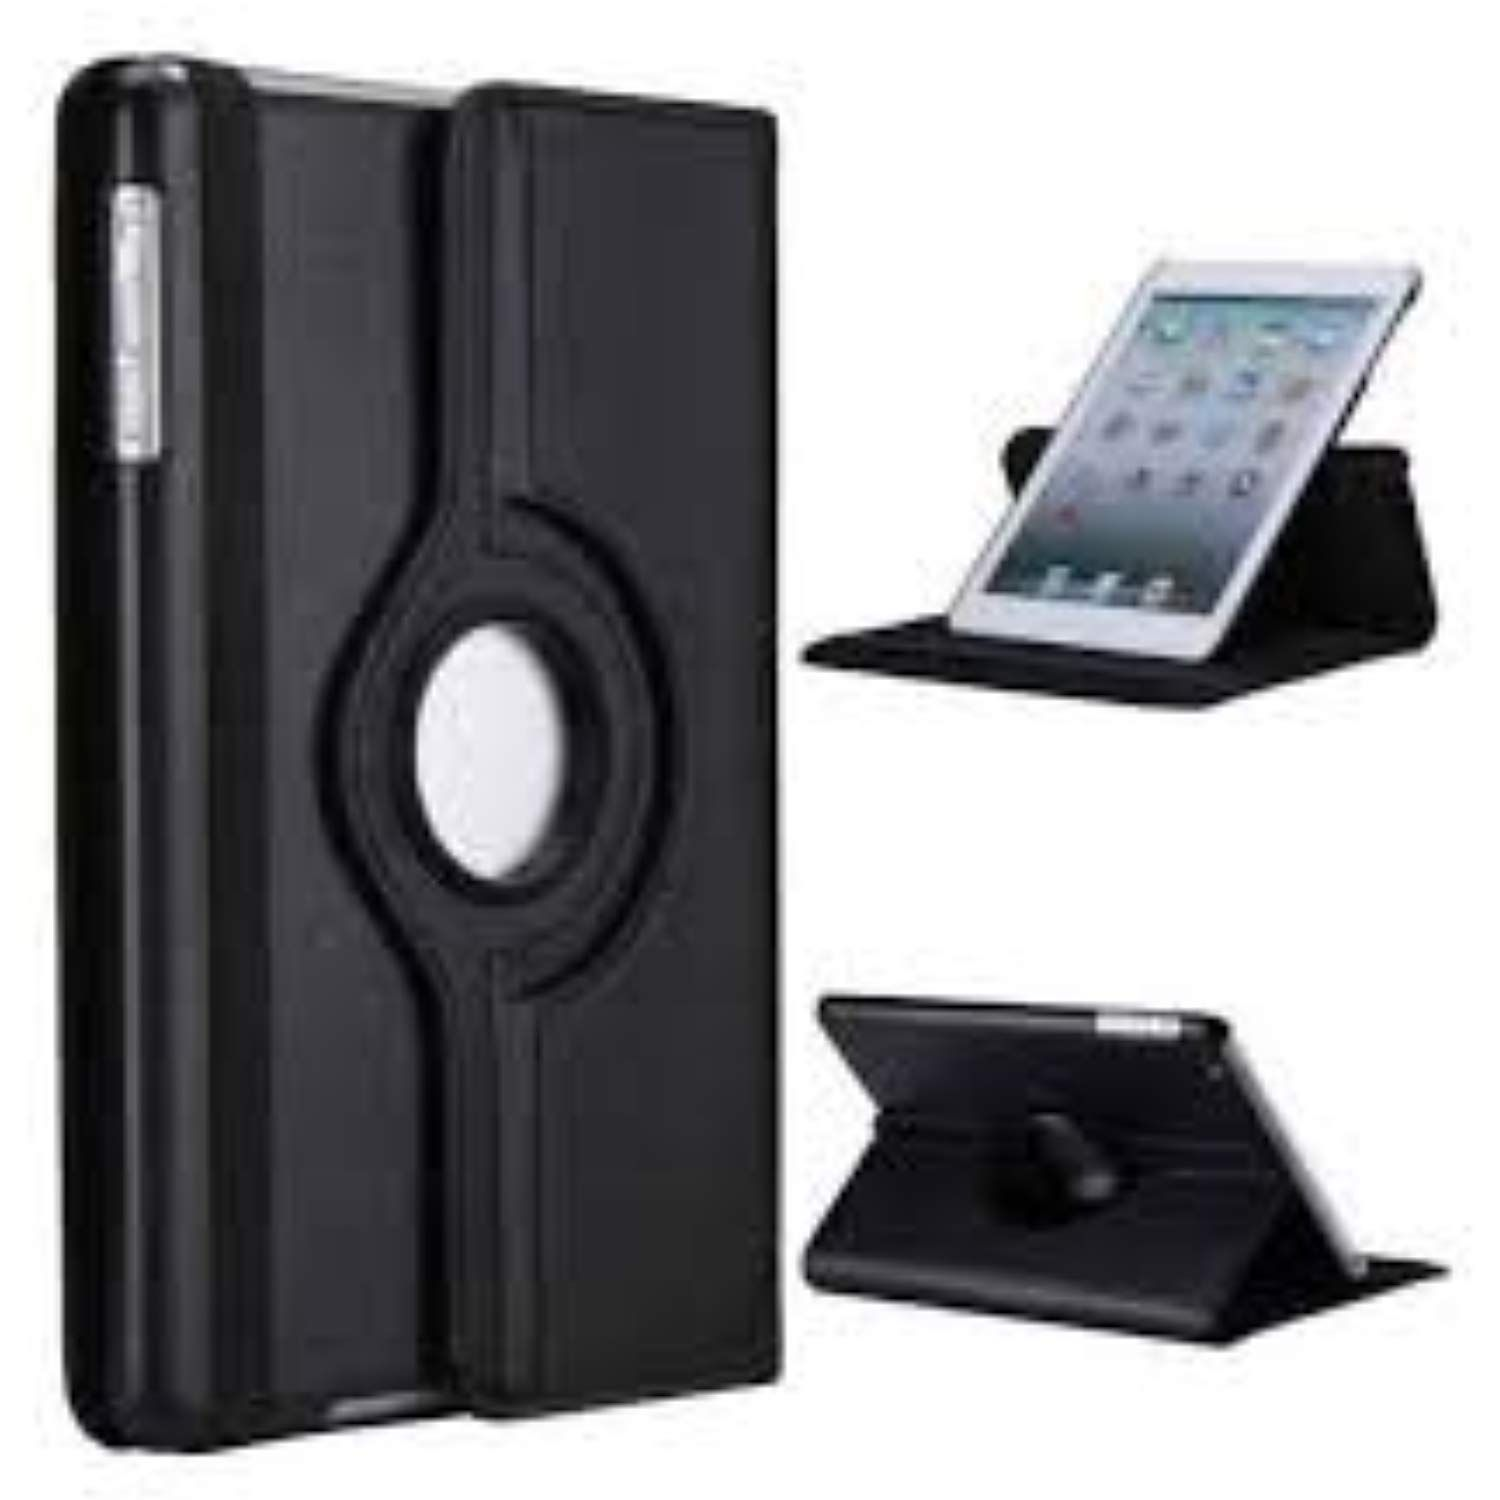 Black Rotating 360 Degree Leather Case Cover With Screen Protector For Ipad 2 3 4 And Stylus Pen